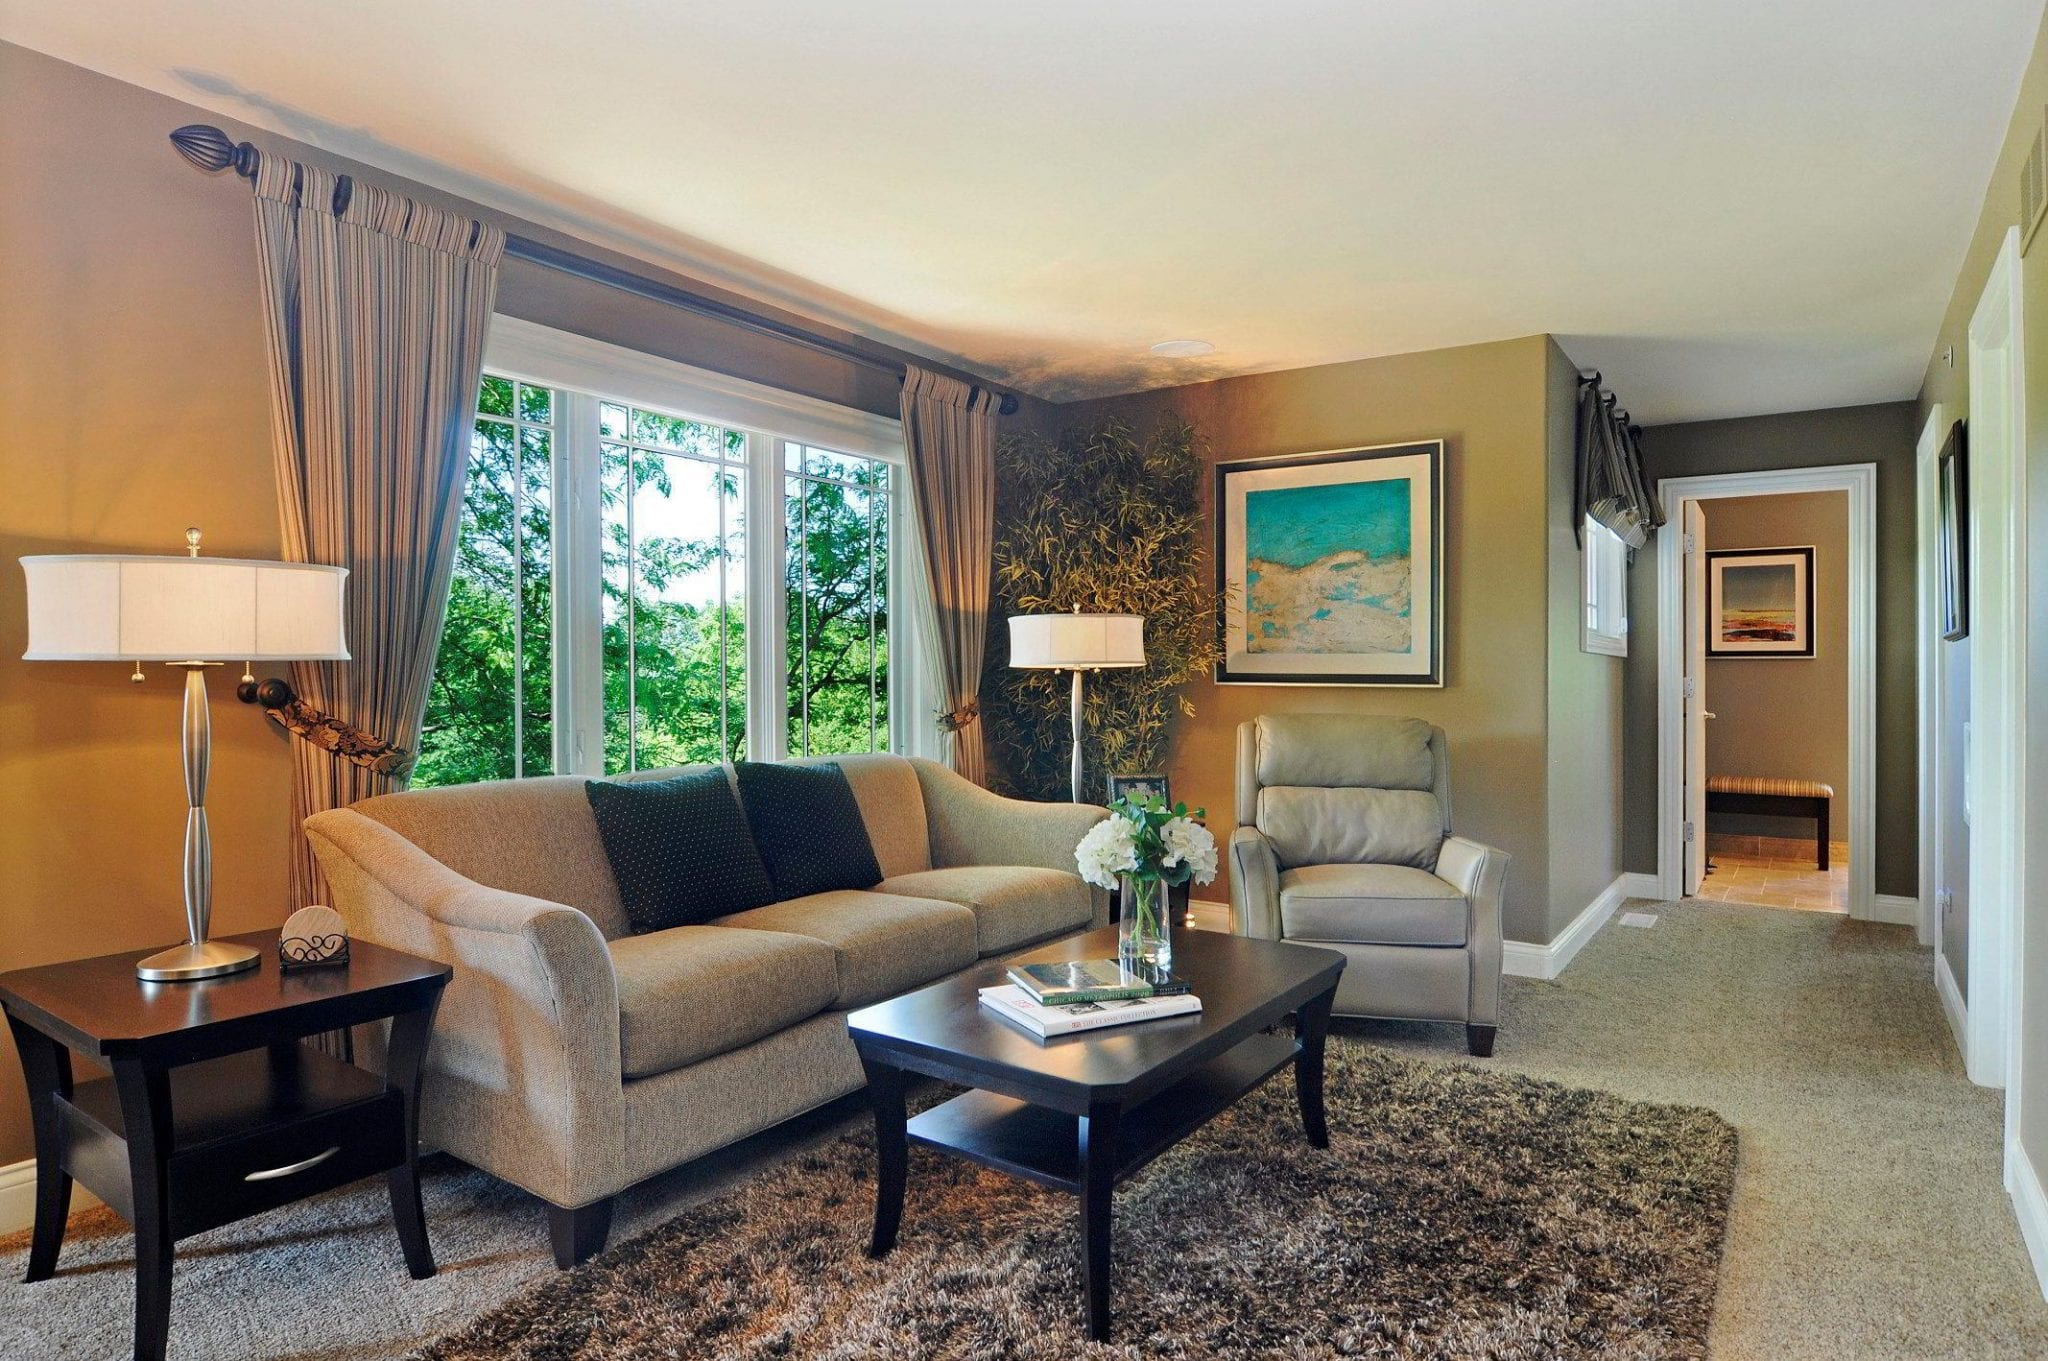 Master Bedroom suite with a dedicated living room was incorporated into this Master Bedroom Design